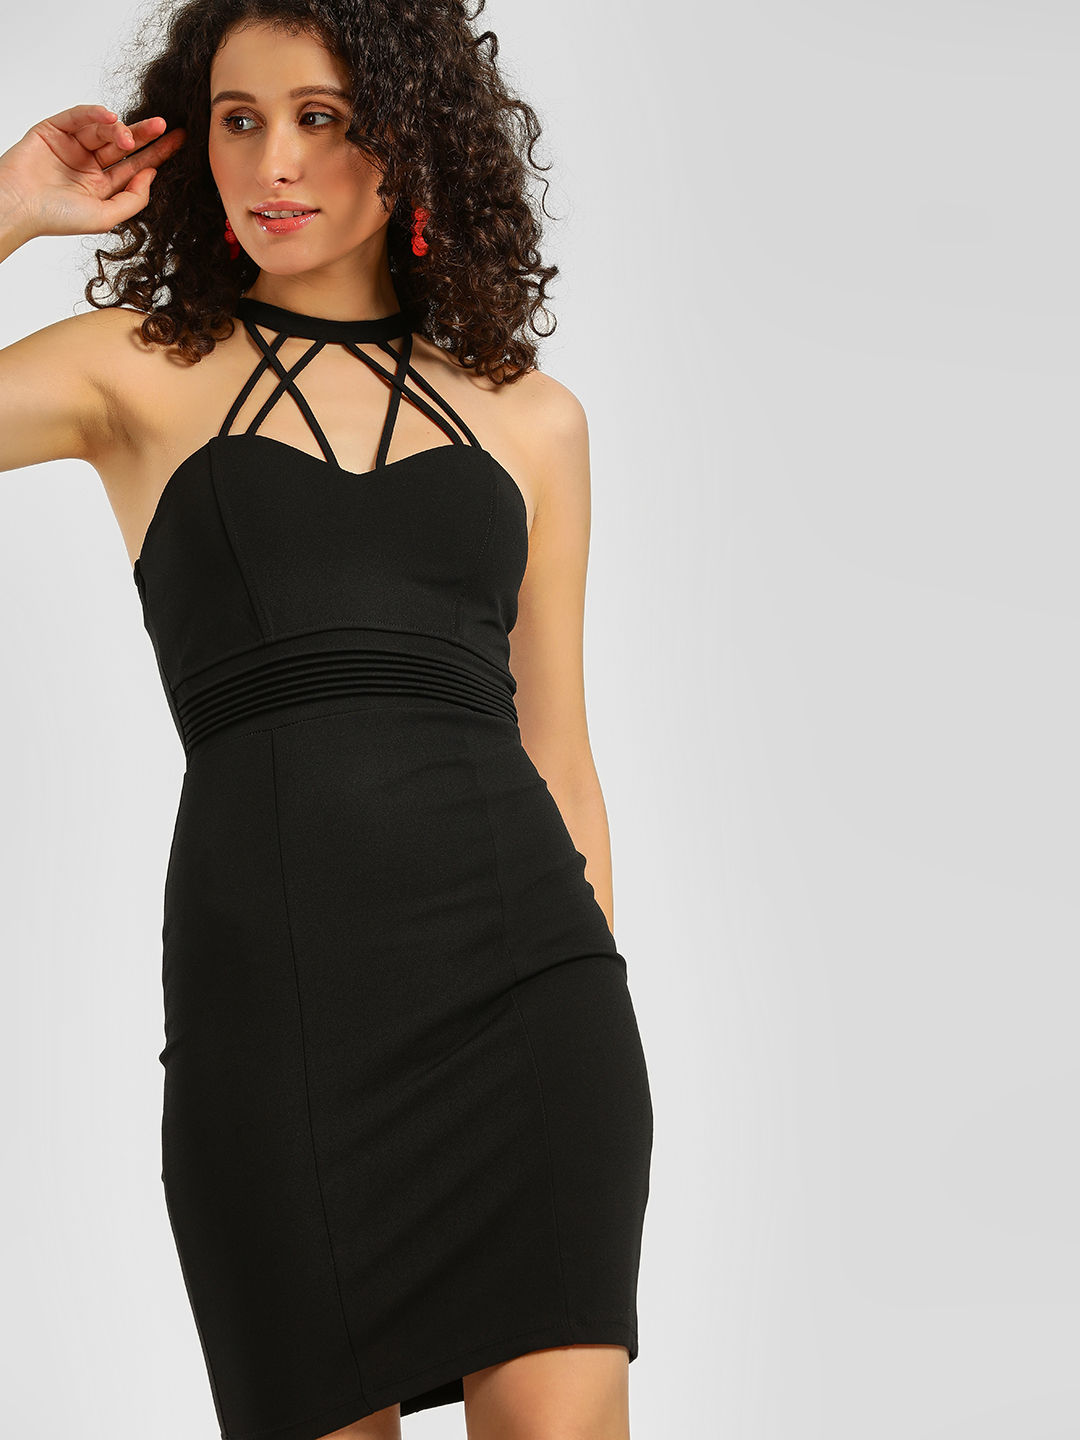 Iris Black Halter Neck Bodycon Dress 1